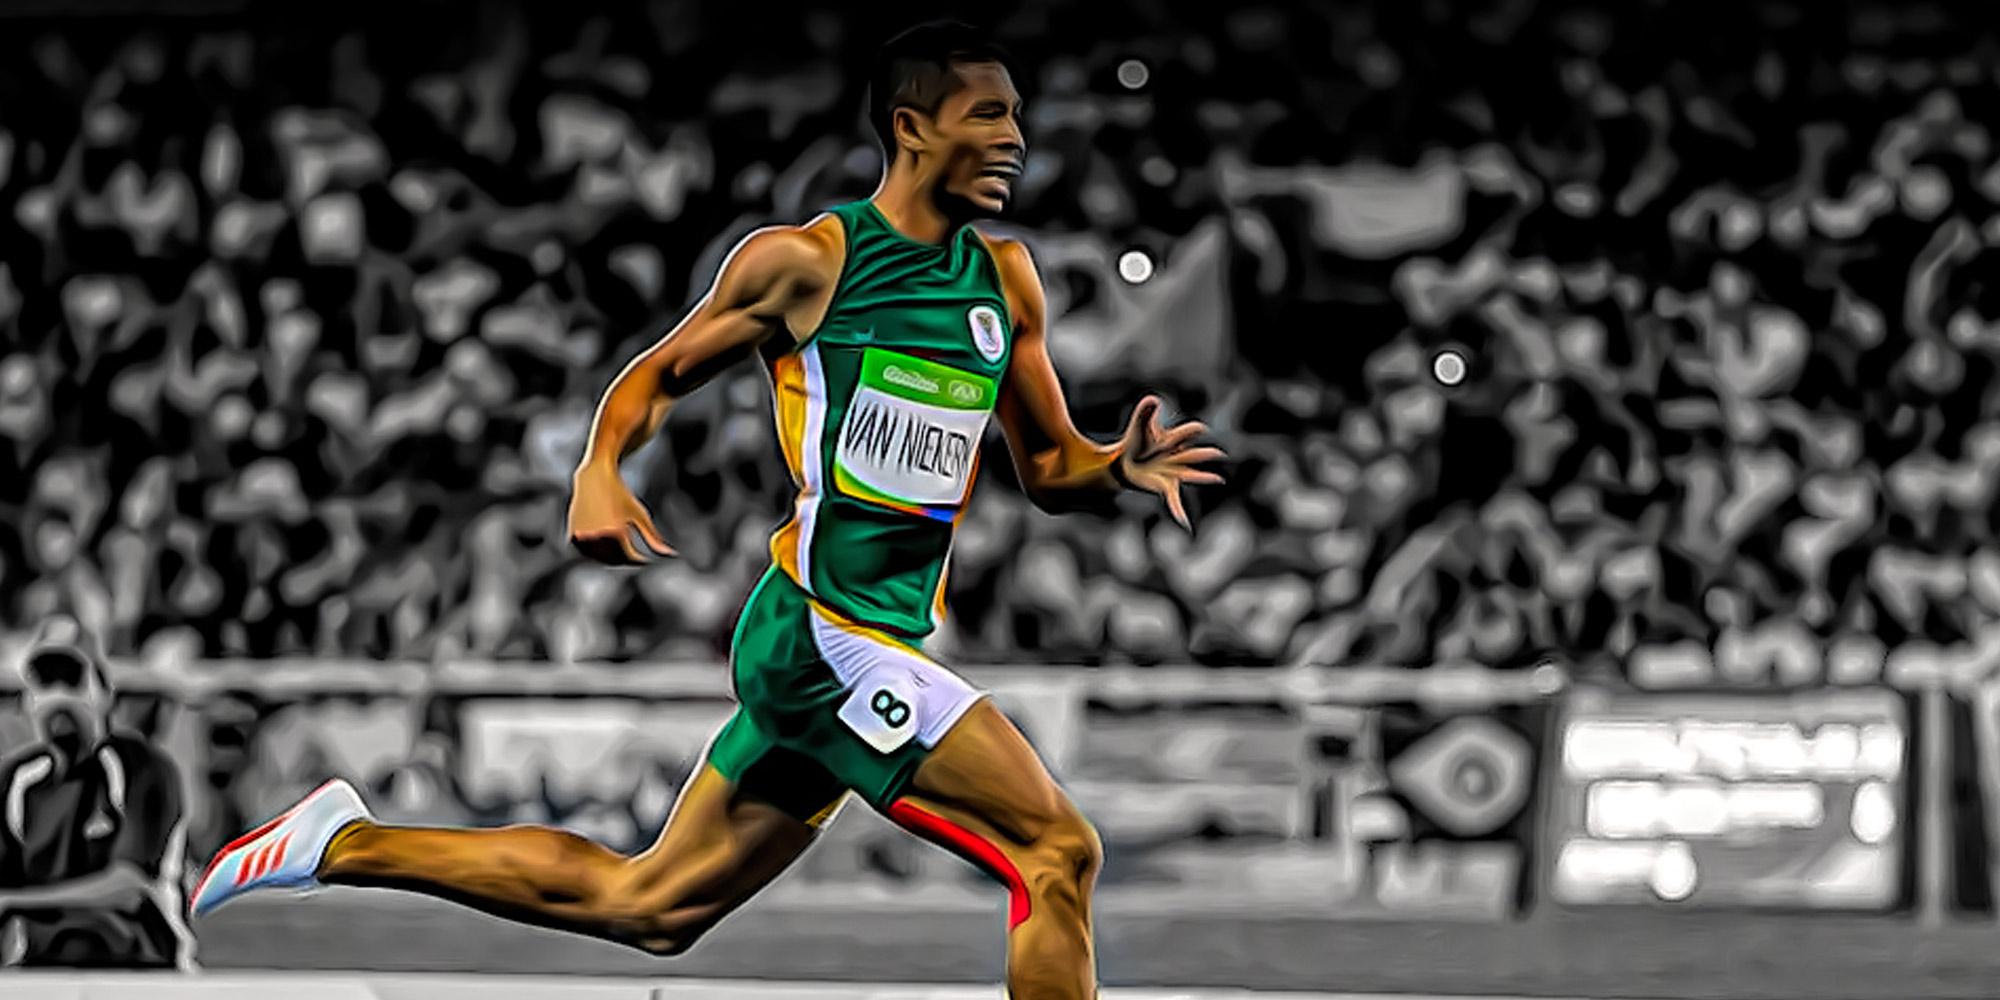 GOLD!!! South Africa at the Olympics